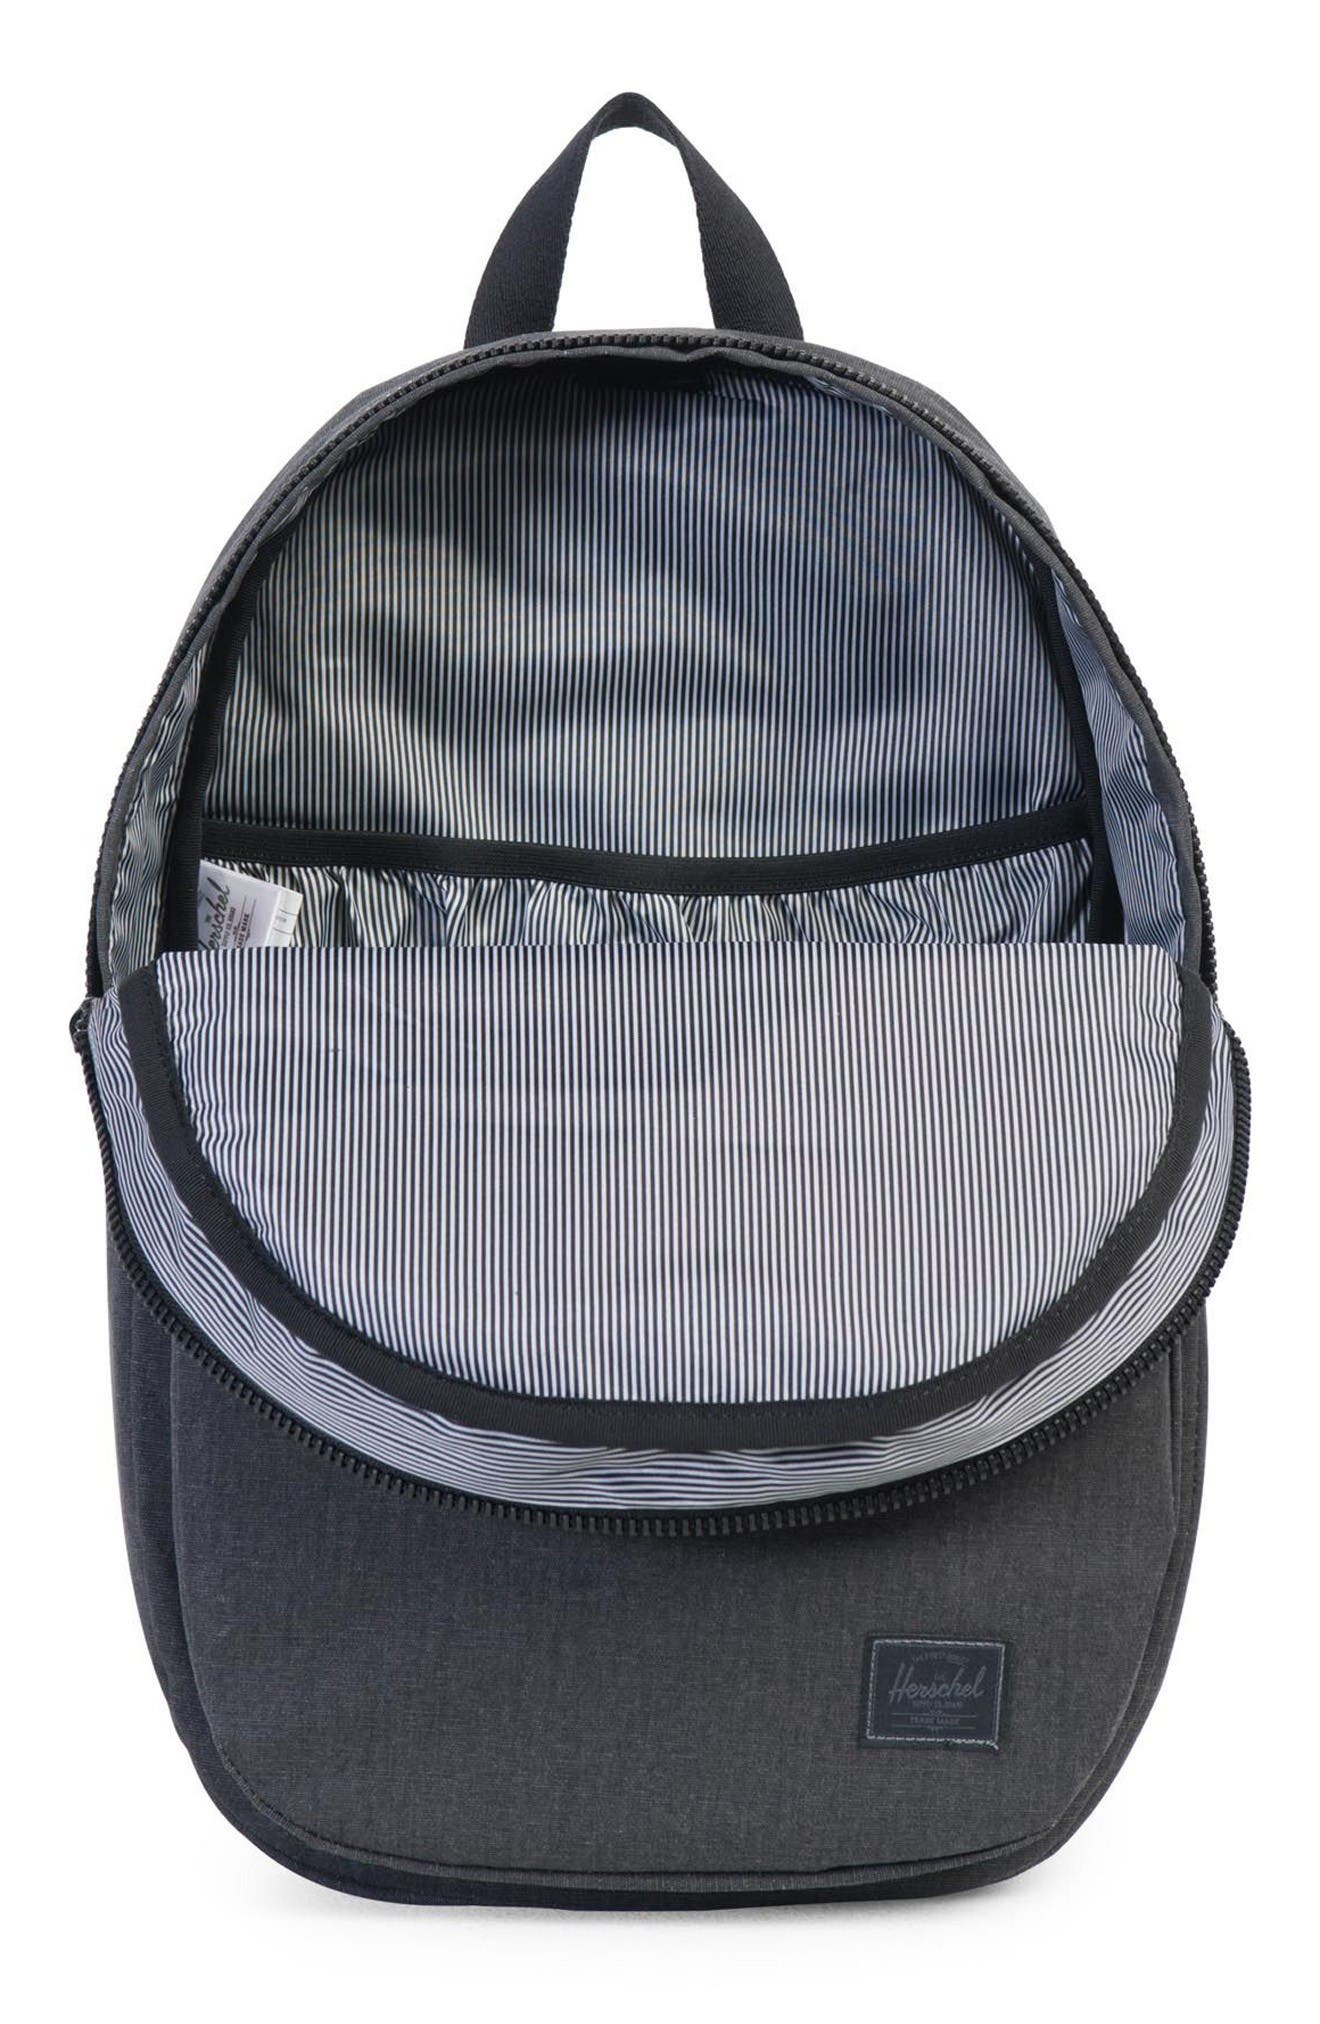 Lawson Backpack,                             Alternate thumbnail 3, color,                             Black Ion Washed